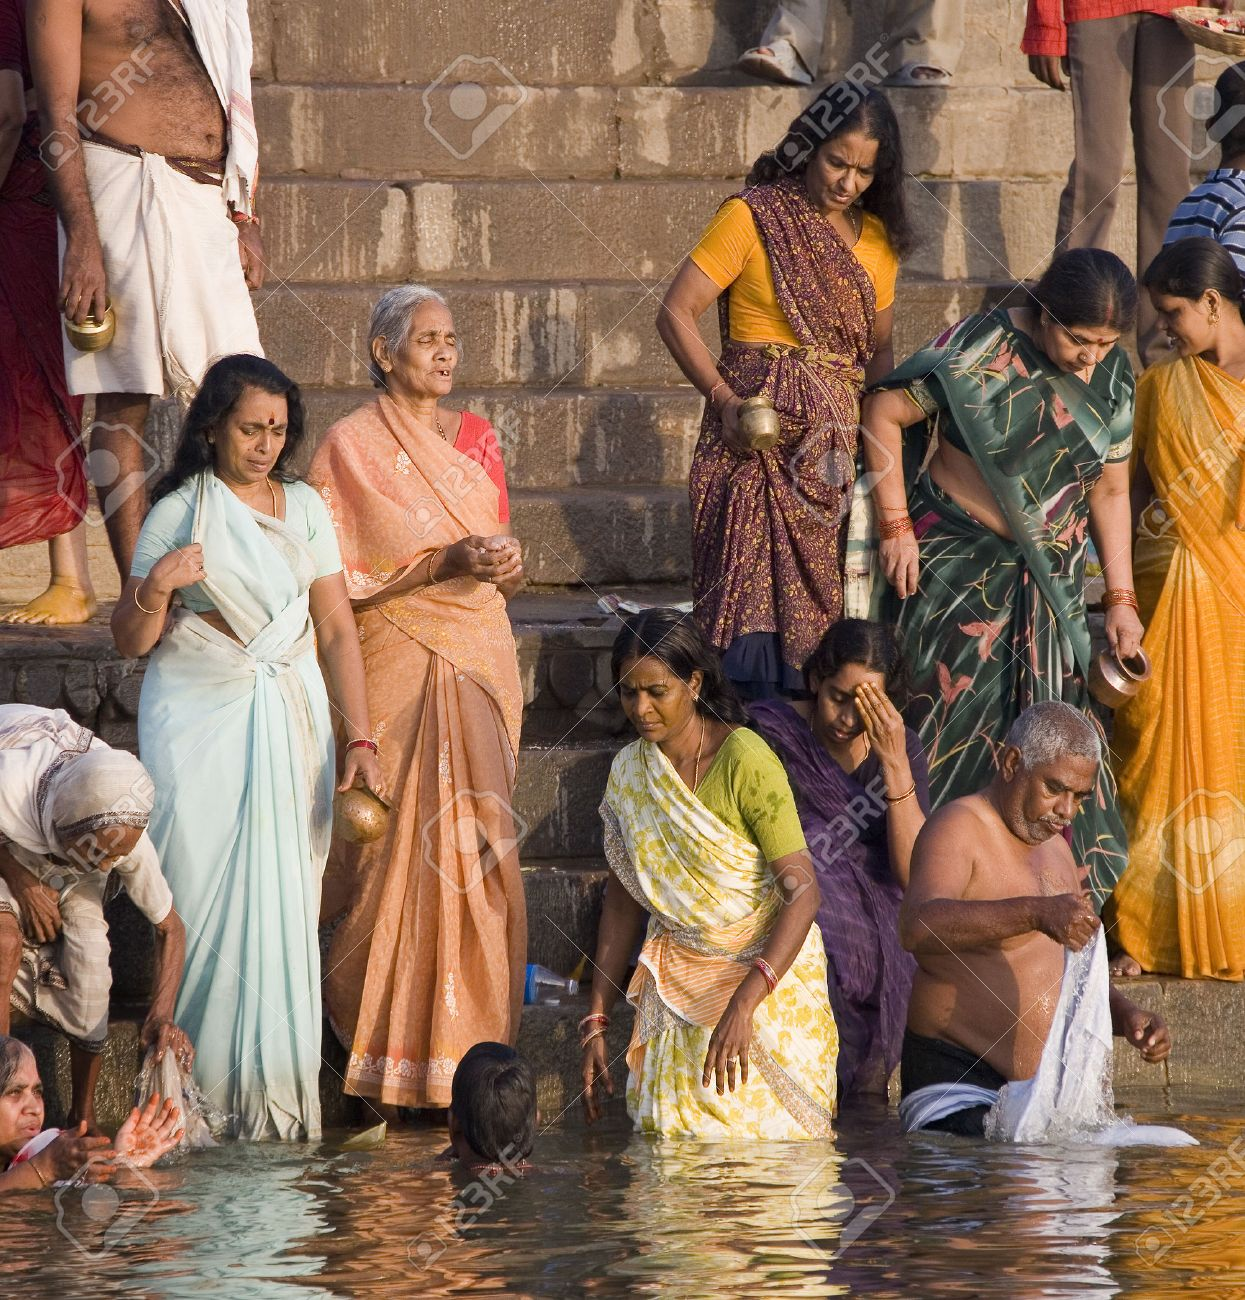 Group of pilgrims on the Hindu ghats on the banks of the Holy River Ganges (Ganga) in Varanasi (Benares) in the Uttar Pradesh region of northern India. - 22358553